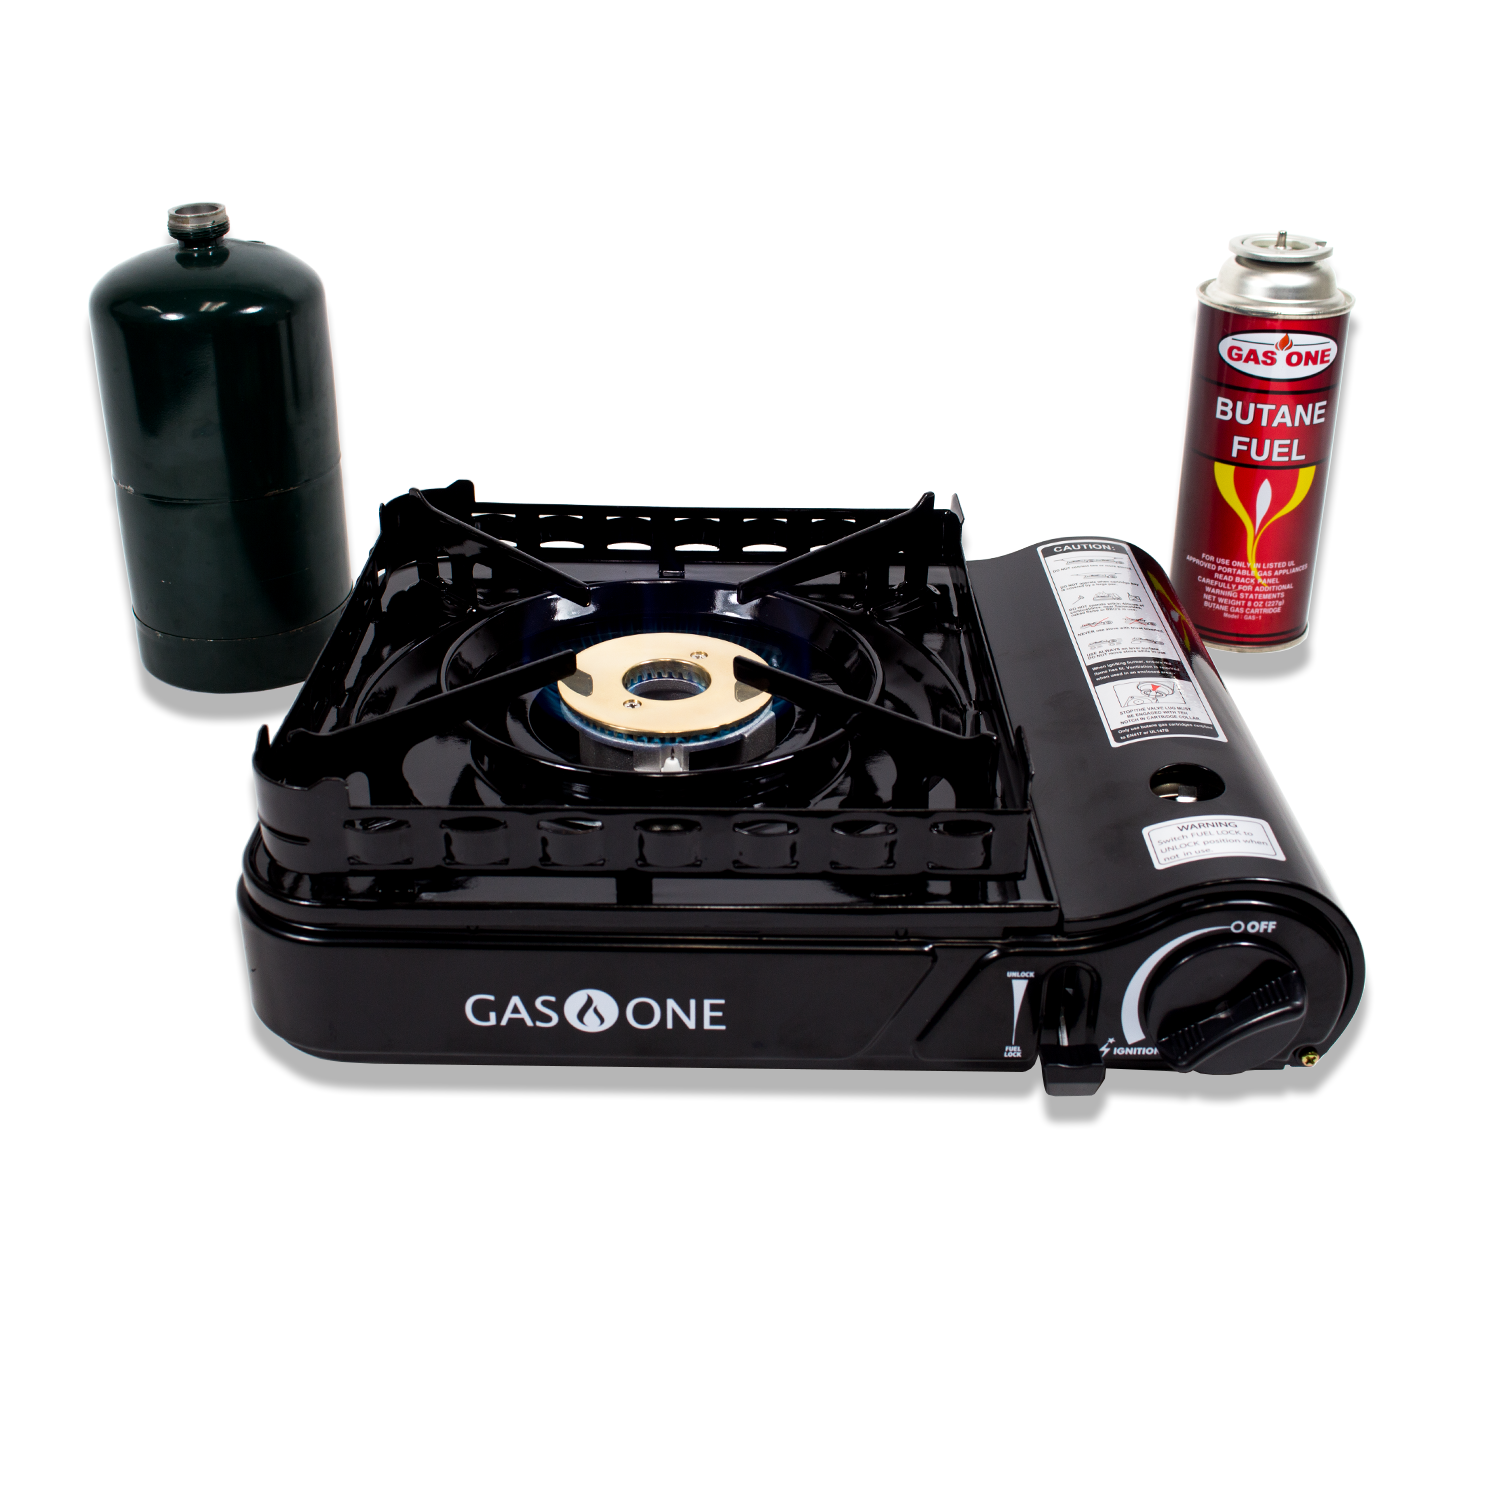 GAS ONE 15,000 BTU Portable Propane or Butane Dual Fuel Stove with Brass Burner Head with Dual Spiral Flame with Convenient Carrying Case GS-3900P